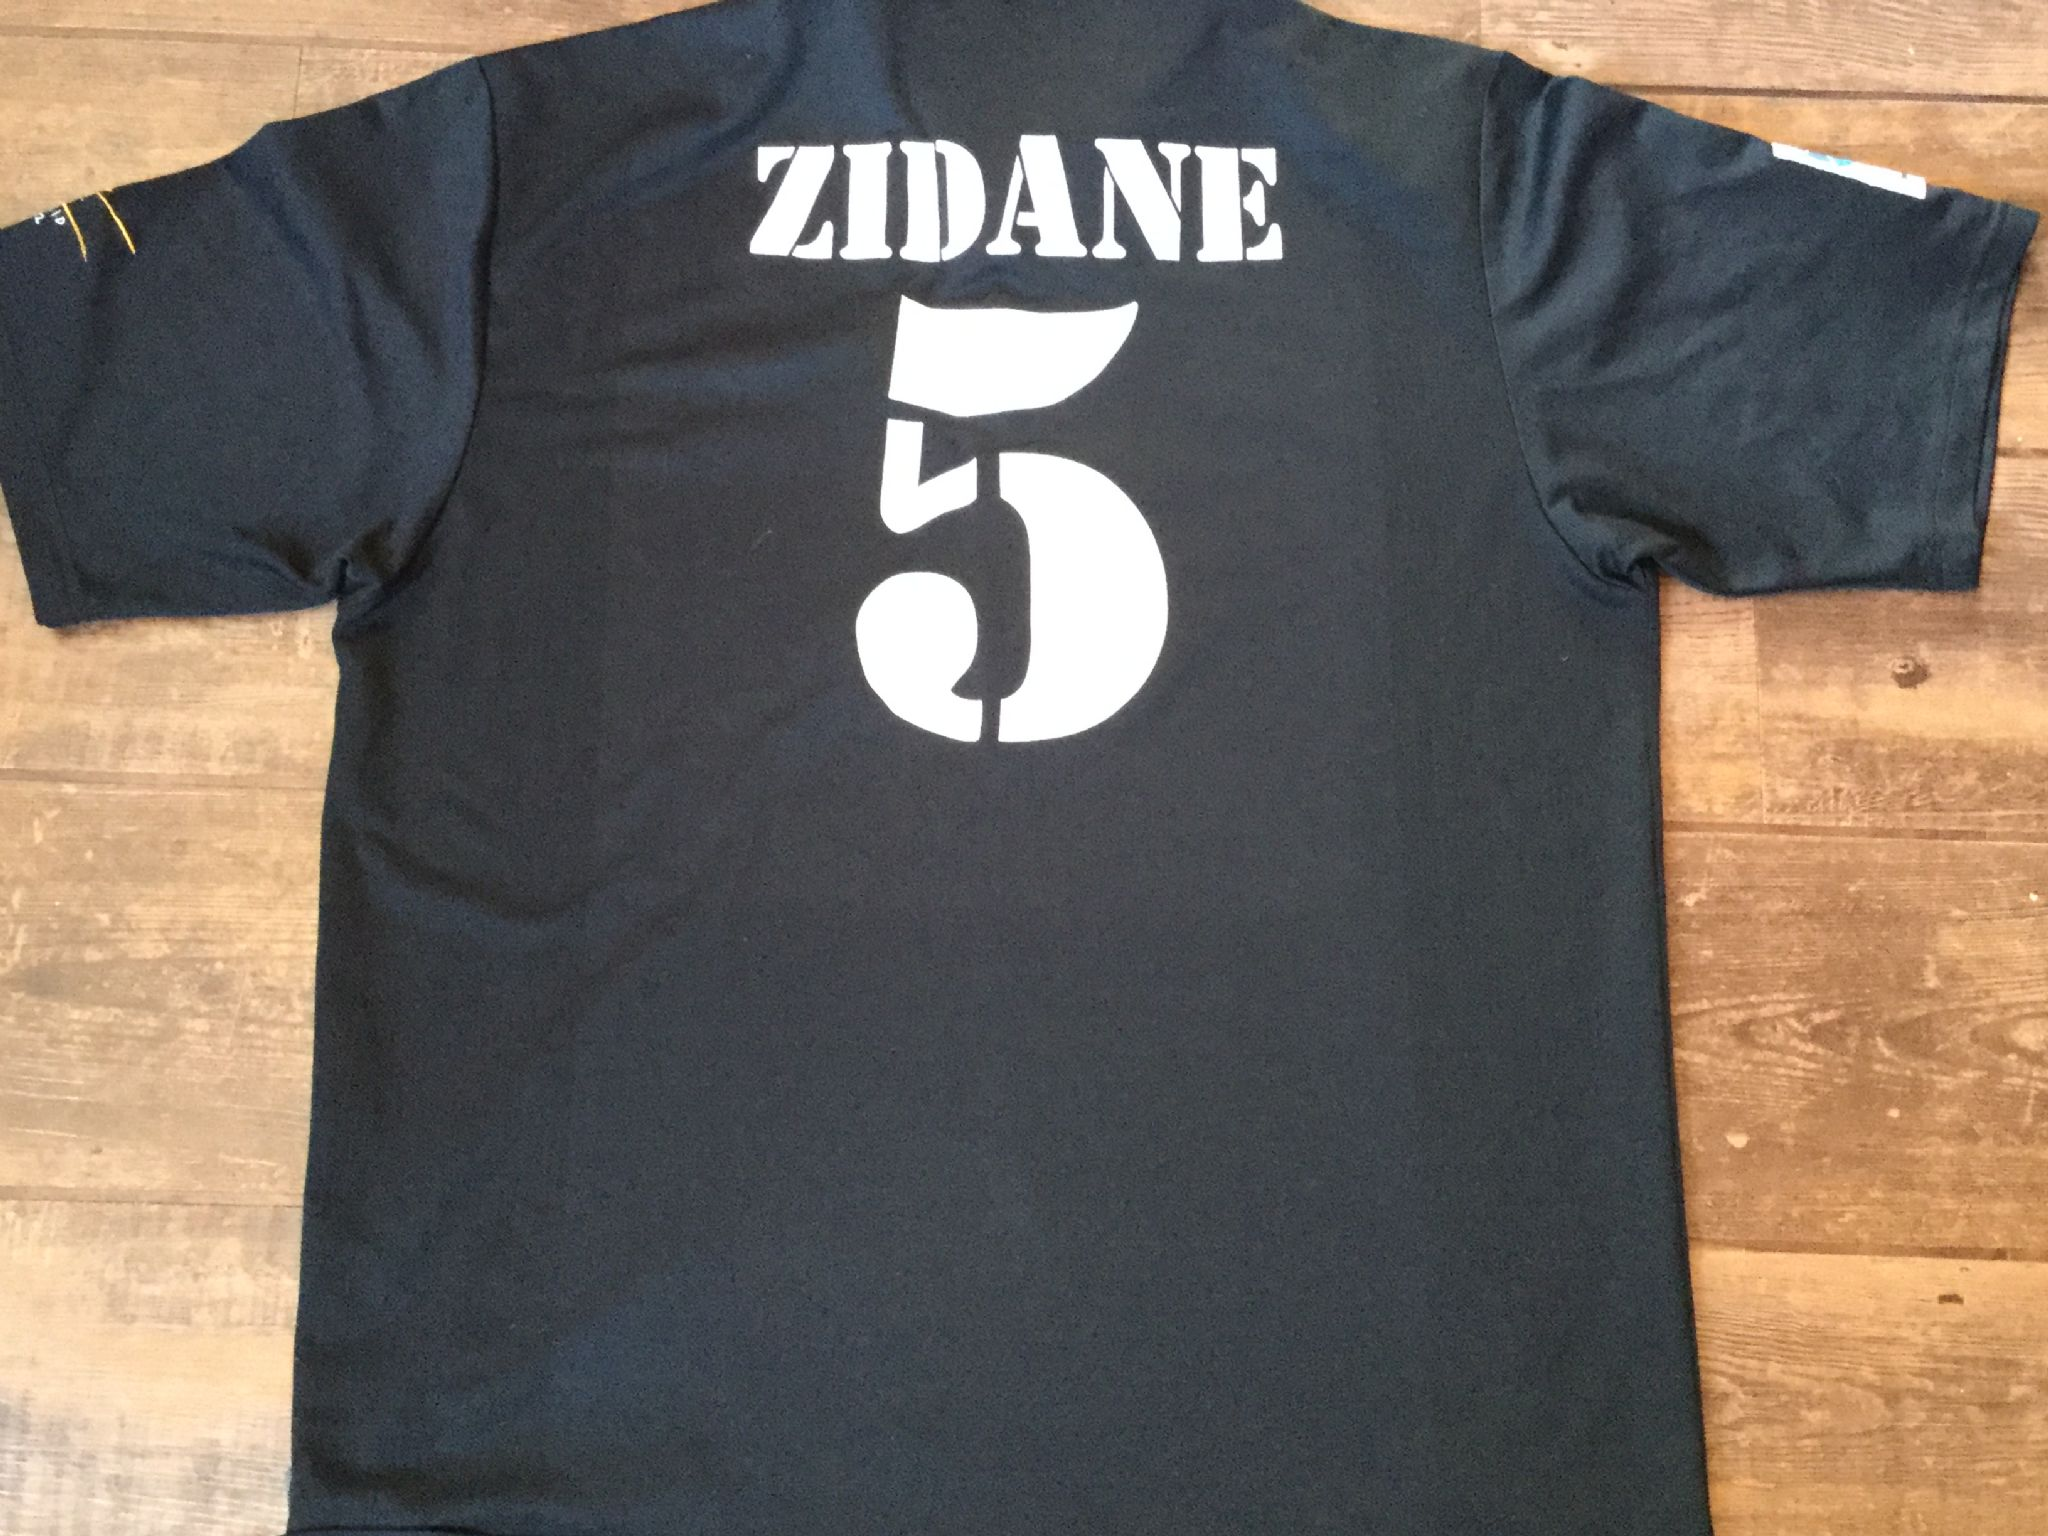 c046d36d2 2002 2003 Real Madrid Zidane Centenary Football Shirt Camiseta Adults XL